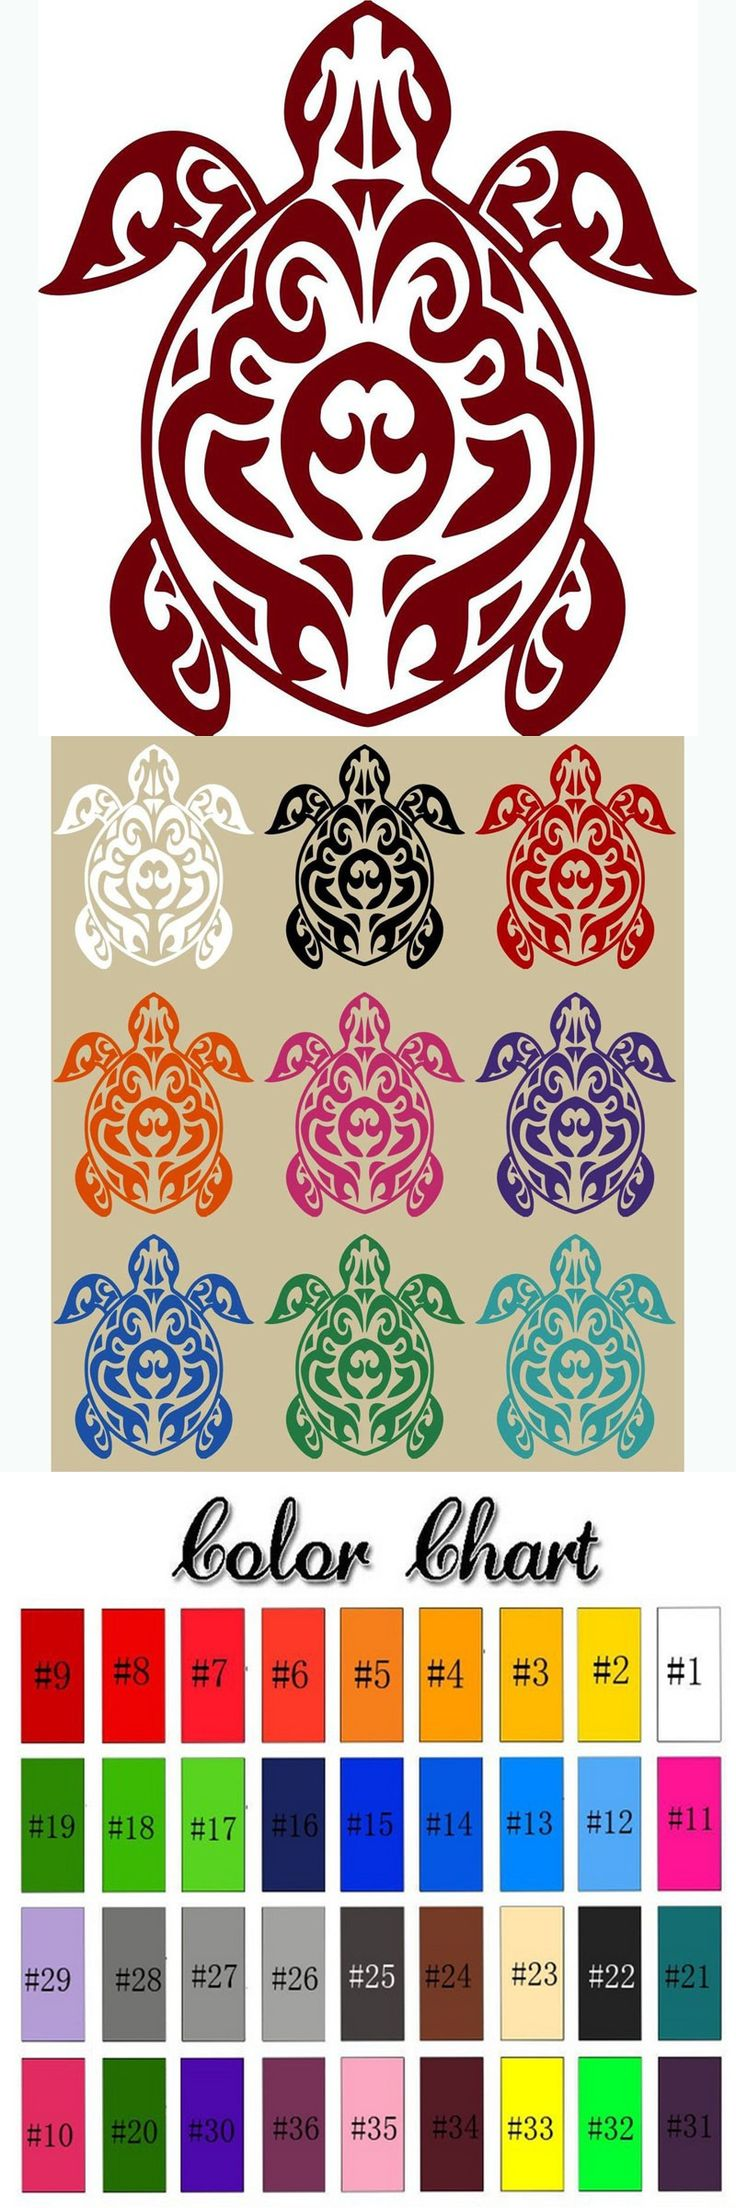 Home Decor Vinyl Wall Art Cricut ~ Cute tortoise ainmal car stickers sea turtle posters home